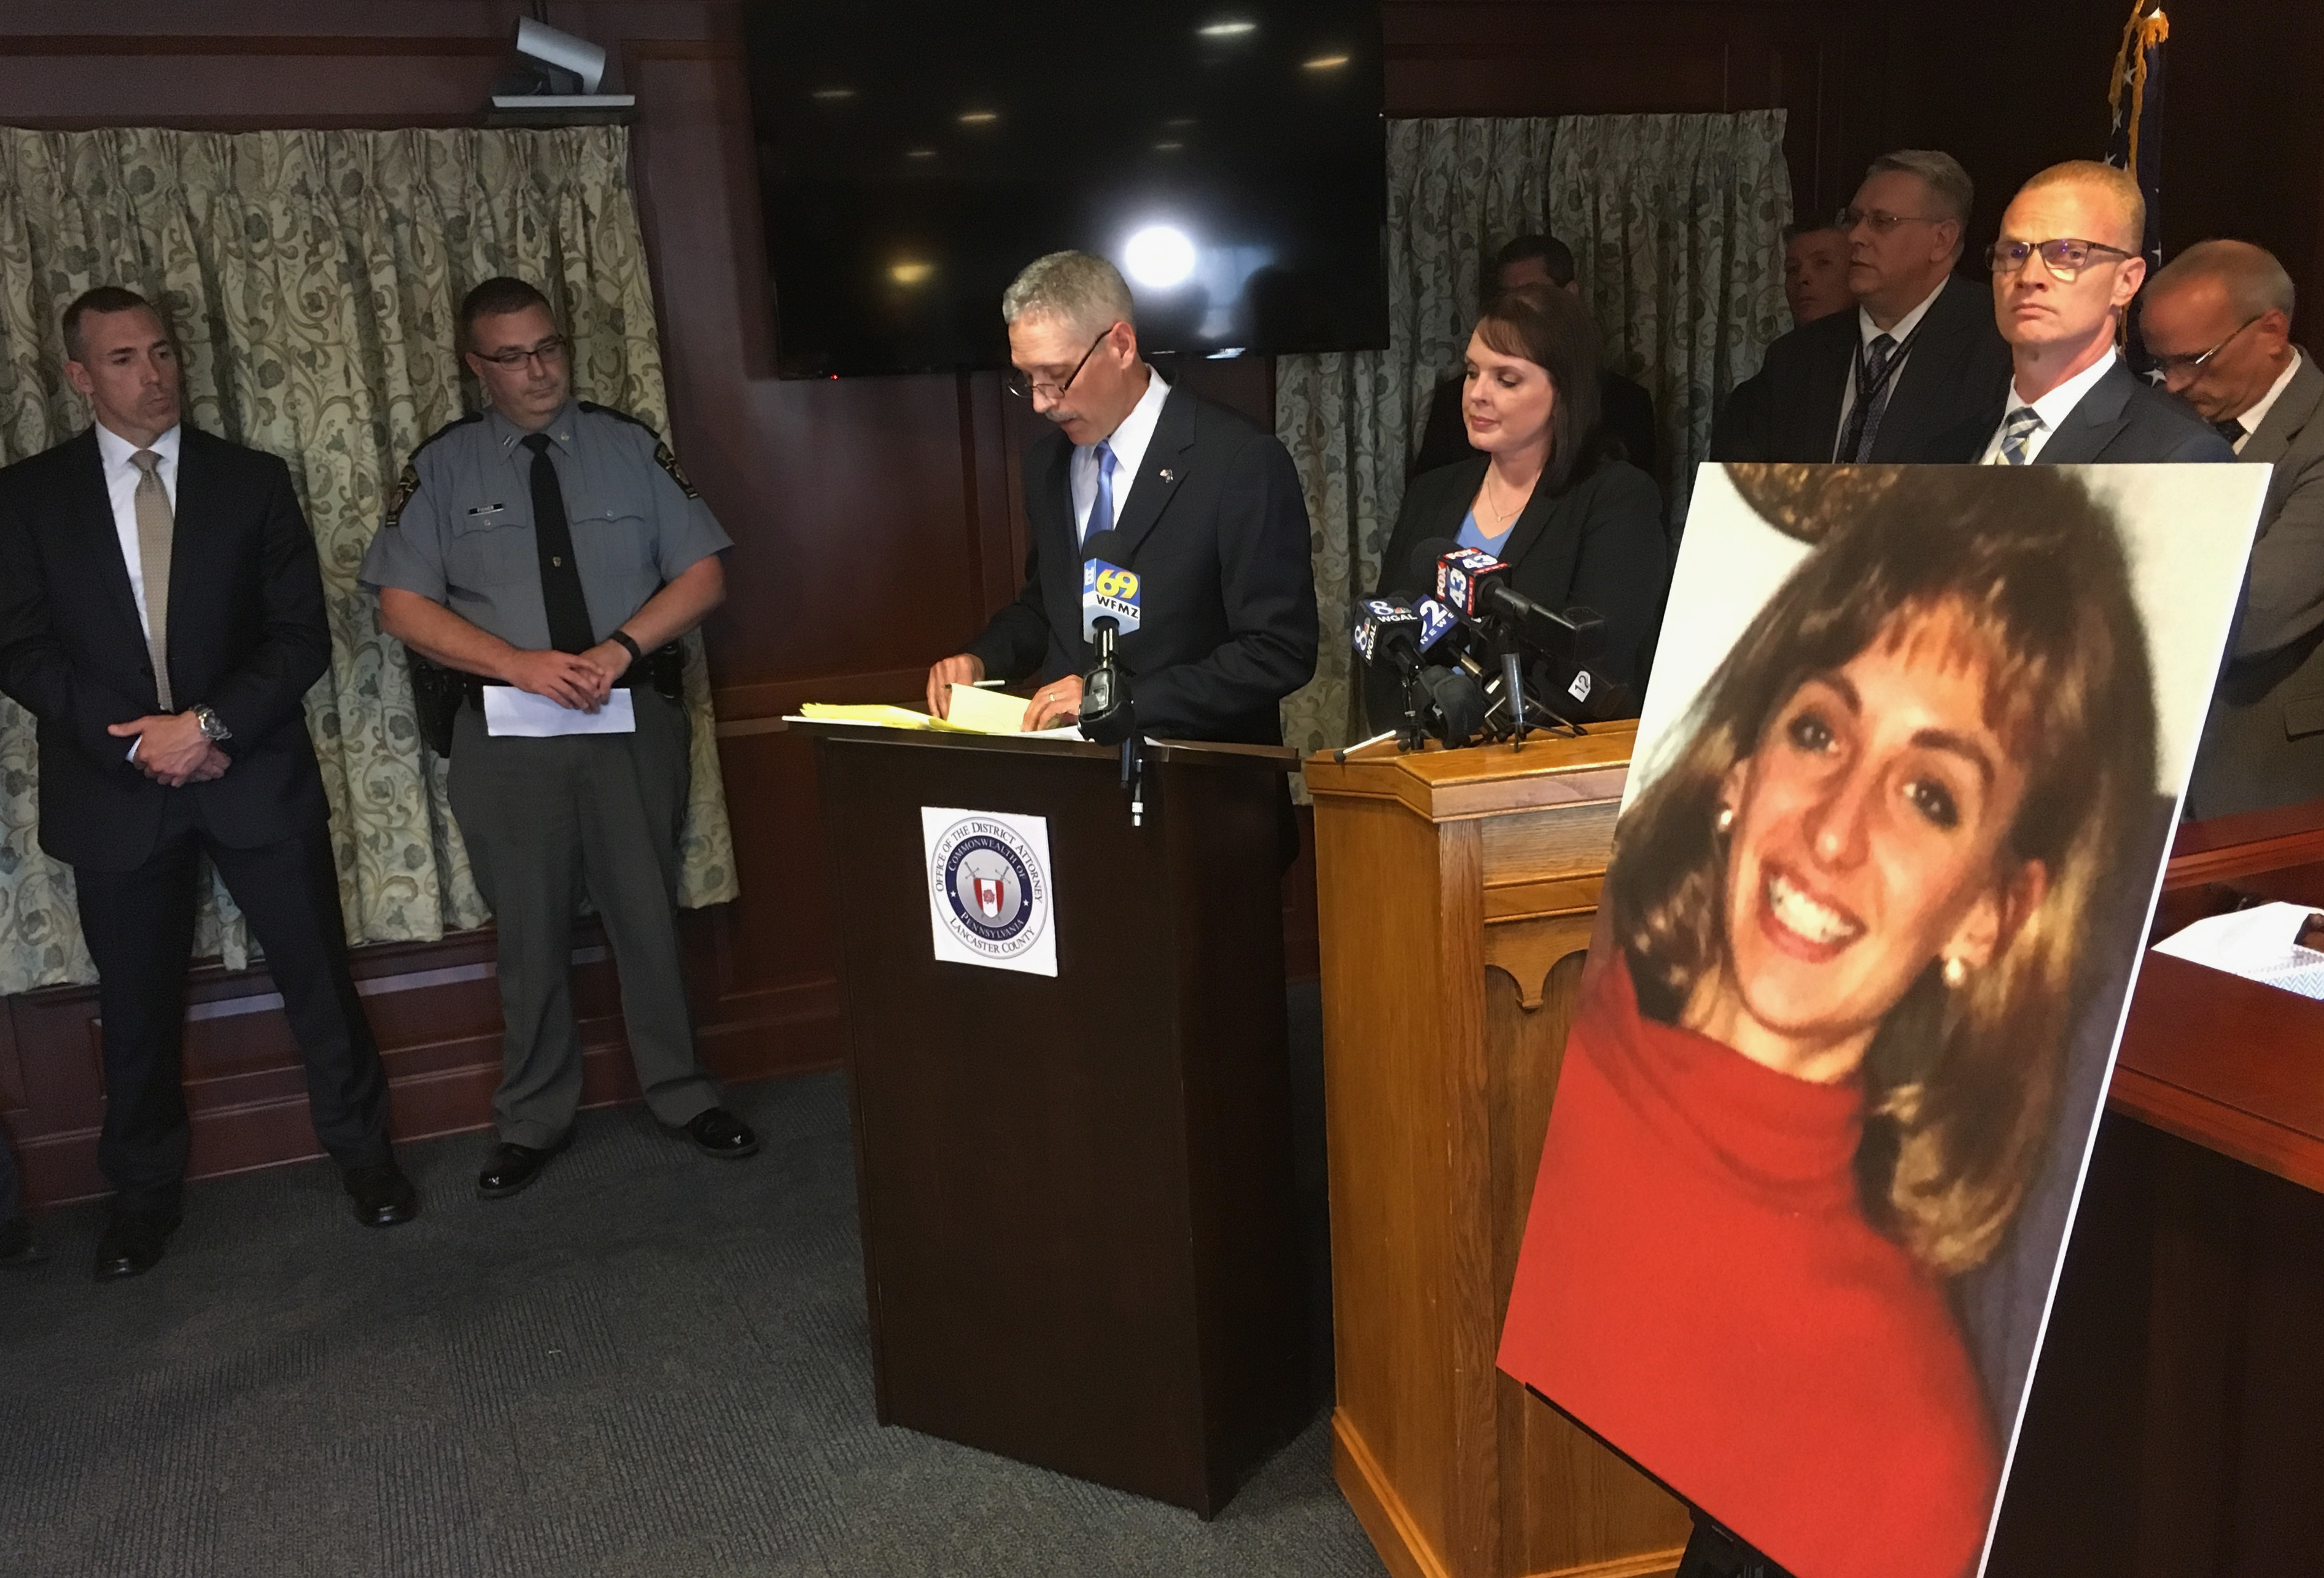 Lancaster County District Attorney Craig Stedman announces charges in a 1992 cold case killing during a news conference at the Lancaster County Courthouse in Lancaster, Pa., Monday, June 25, 2018. A family photo of the victim, Christy Mirack, is seen at right. A popular DJ in Pennsylvania has been charged in the 1992 killing of Mirack, an elementary school teacher who was sexually assaulted, beaten and strangled in her home as she was getting ready for work. (AP Photo/Mark Scolforo)